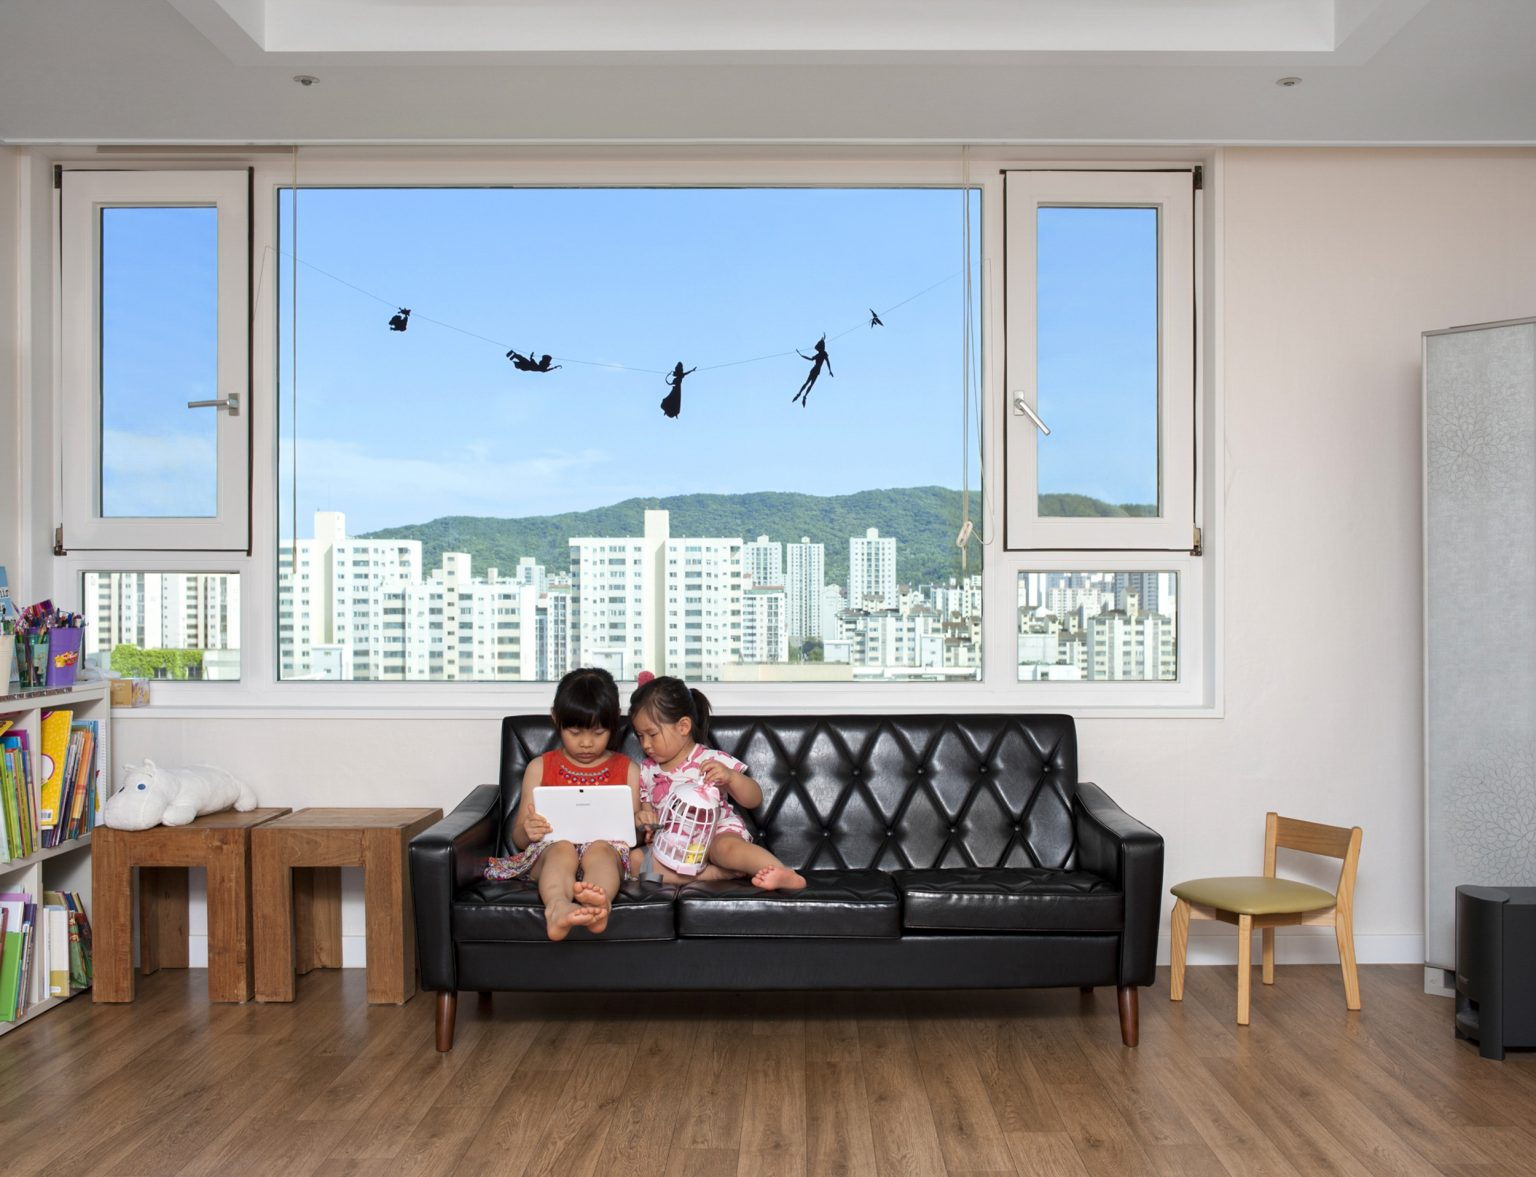 Republic of Korea, Seoul, July 2015: children watching a cartoon in their family apartment.*Stitched photograph*